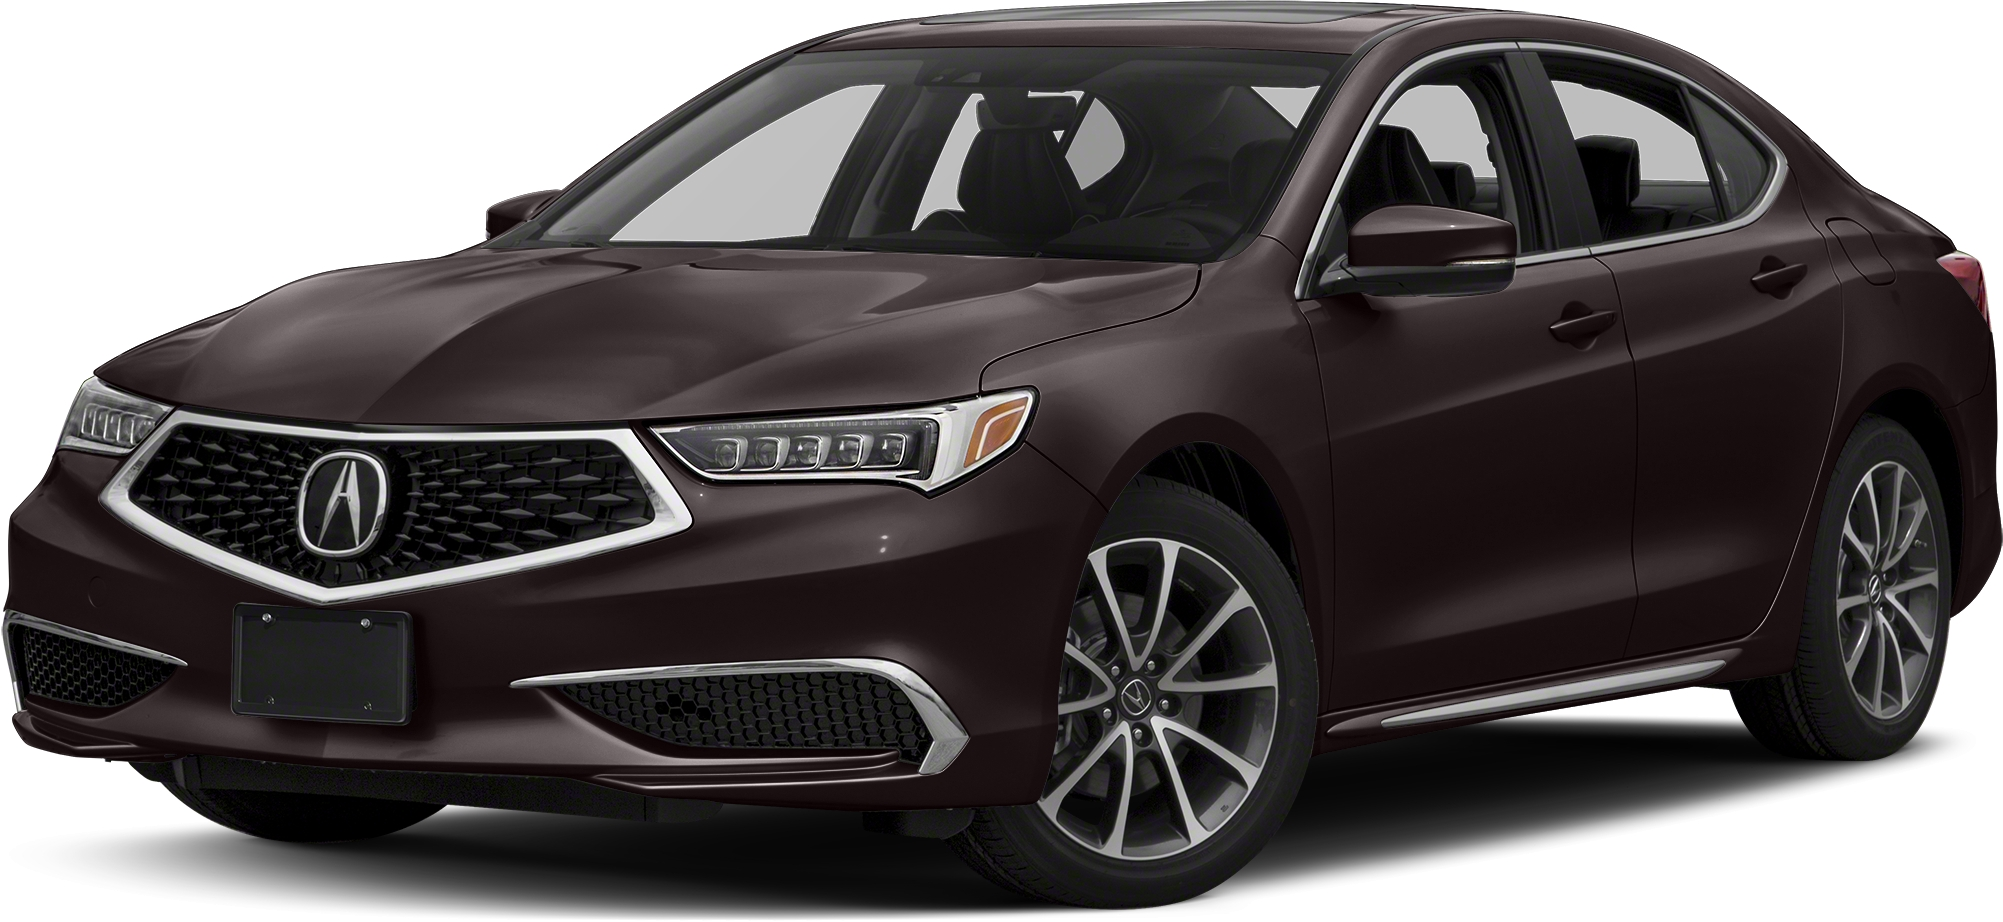 2018 acura tlx 3 5 v 6 9 at p aws with technology package. Black Bedroom Furniture Sets. Home Design Ideas